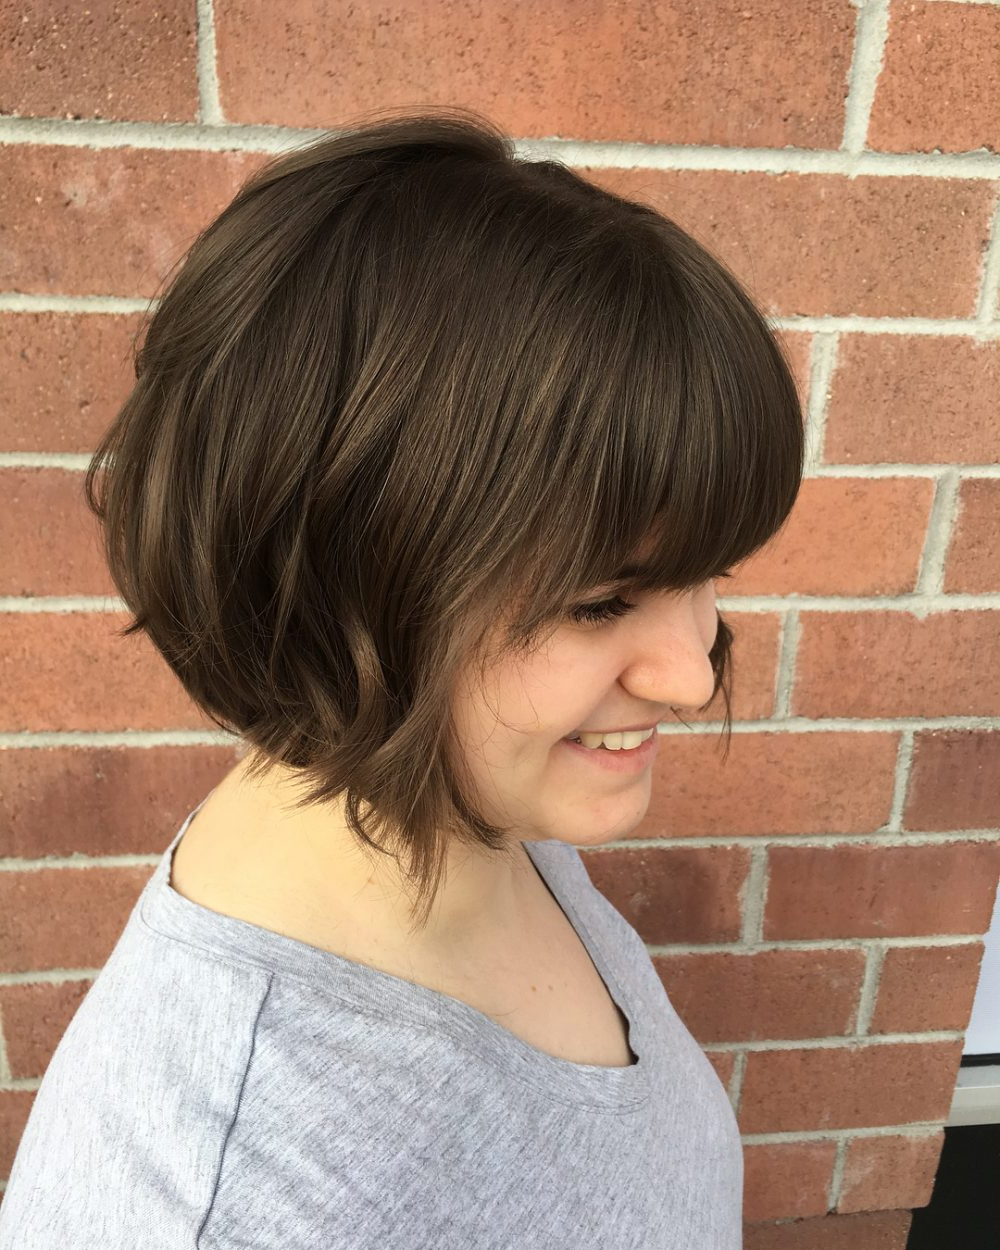 34 Greatest Short Haircuts And Hairstyles For Thick Hair For 2019 Regarding Most Up To Date Medium Haircuts For Thick Hair With Bangs (View 7 of 20)